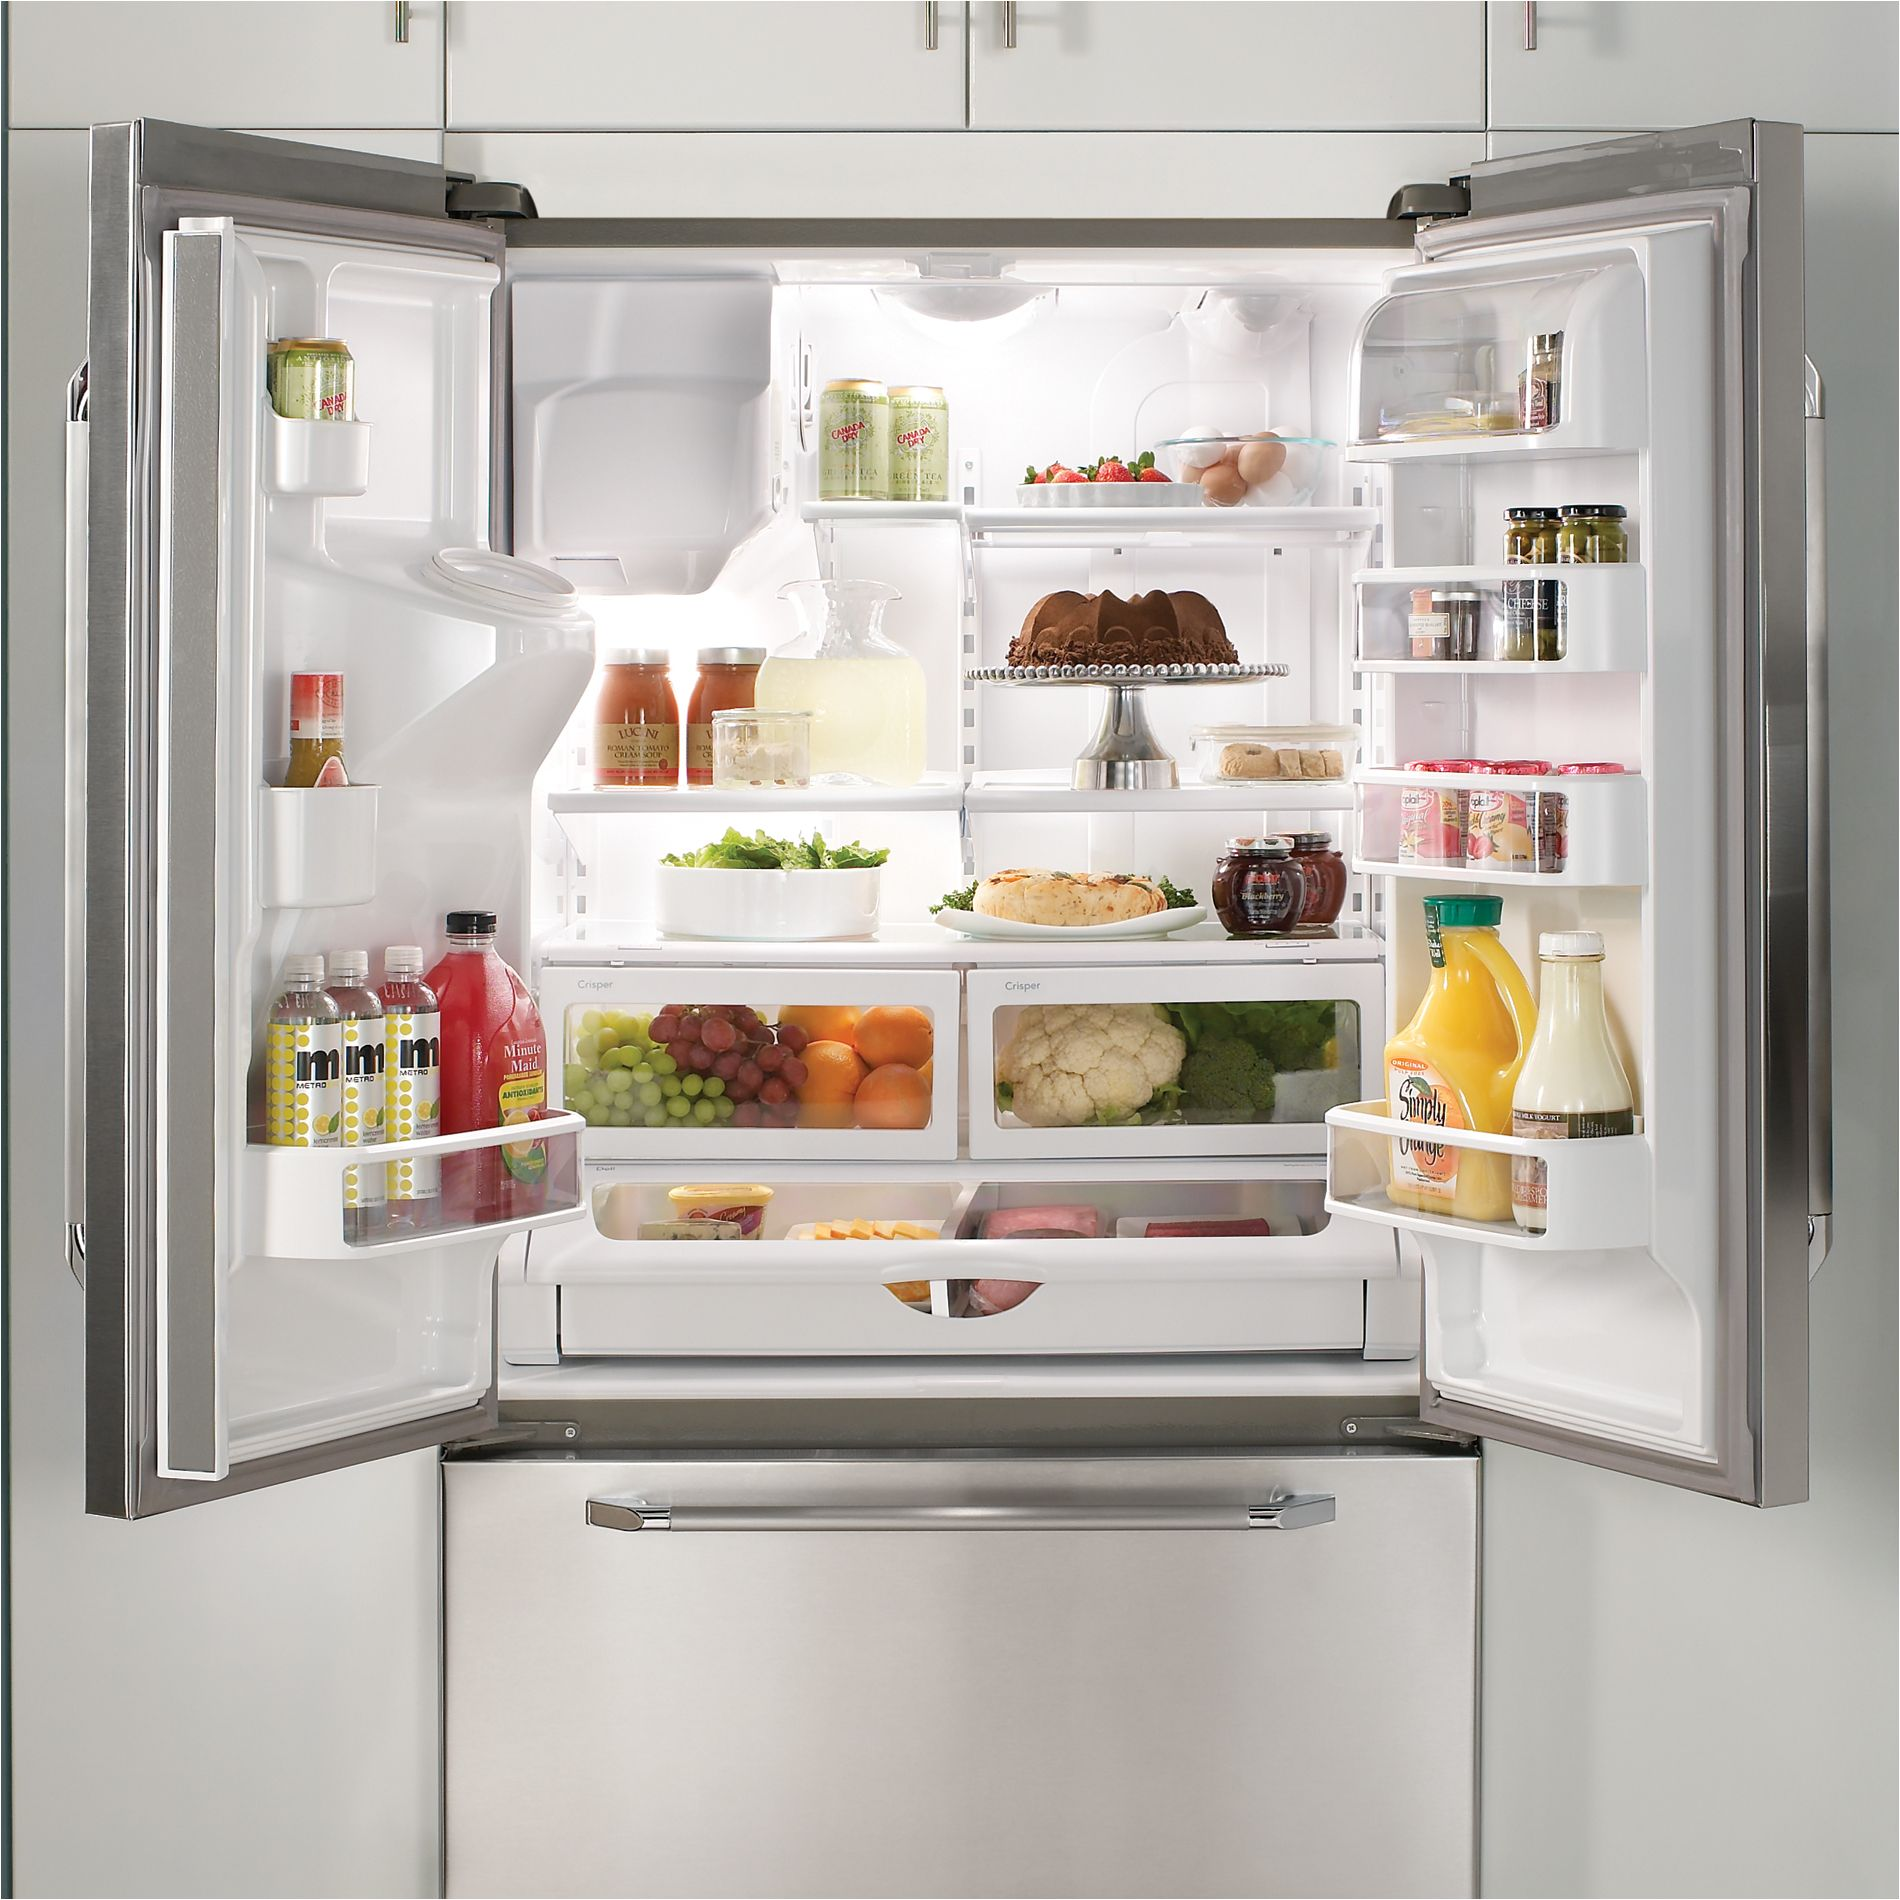 Dacor Renaissance 19.9 cu. ft. Counter-Depth French-Door Refrigerator - Stainless Steel